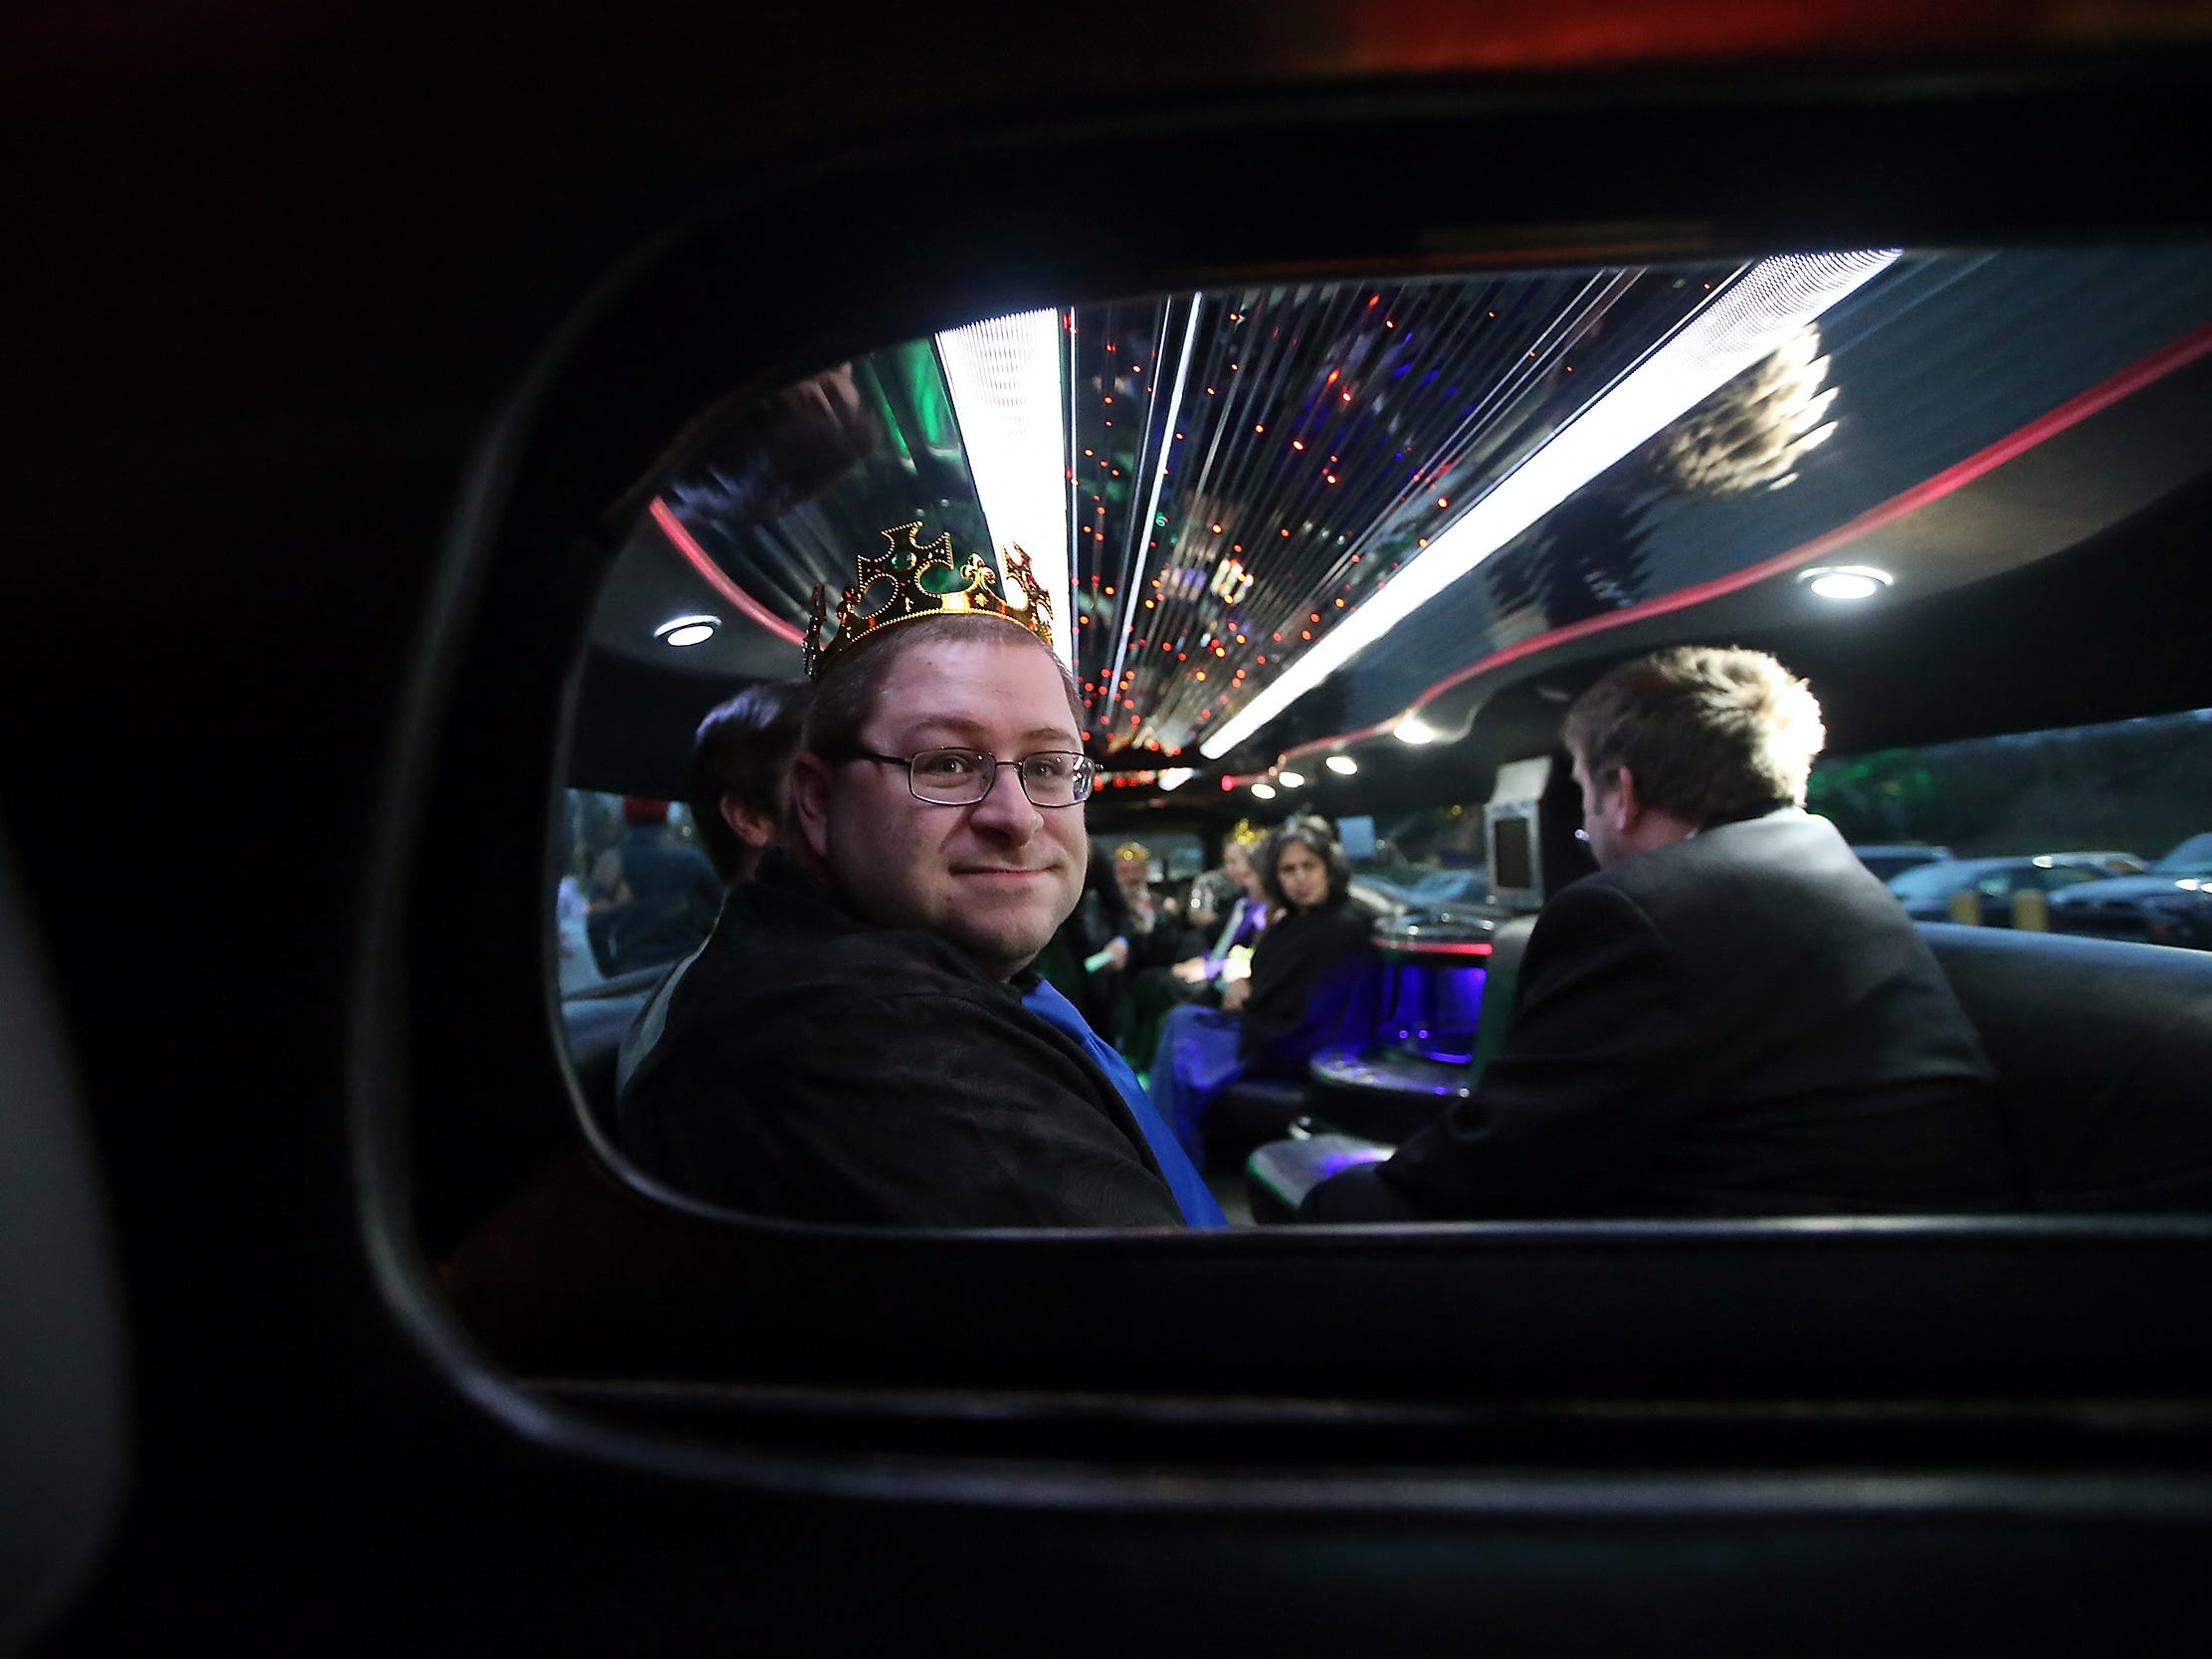 Prom attendee Robert Kondracki looks through the partition to the front of the limo as he and fellow partygoers get ready for a ride at the annual Night to Shine at the Kitsap Sun Pavilion on Friday, Feb. 9, 2018. Night to Shine is an annual prom experience for people with special needs was created and sponsored by the Tim Tebow Foundation and hosted locally by Newlife Church.